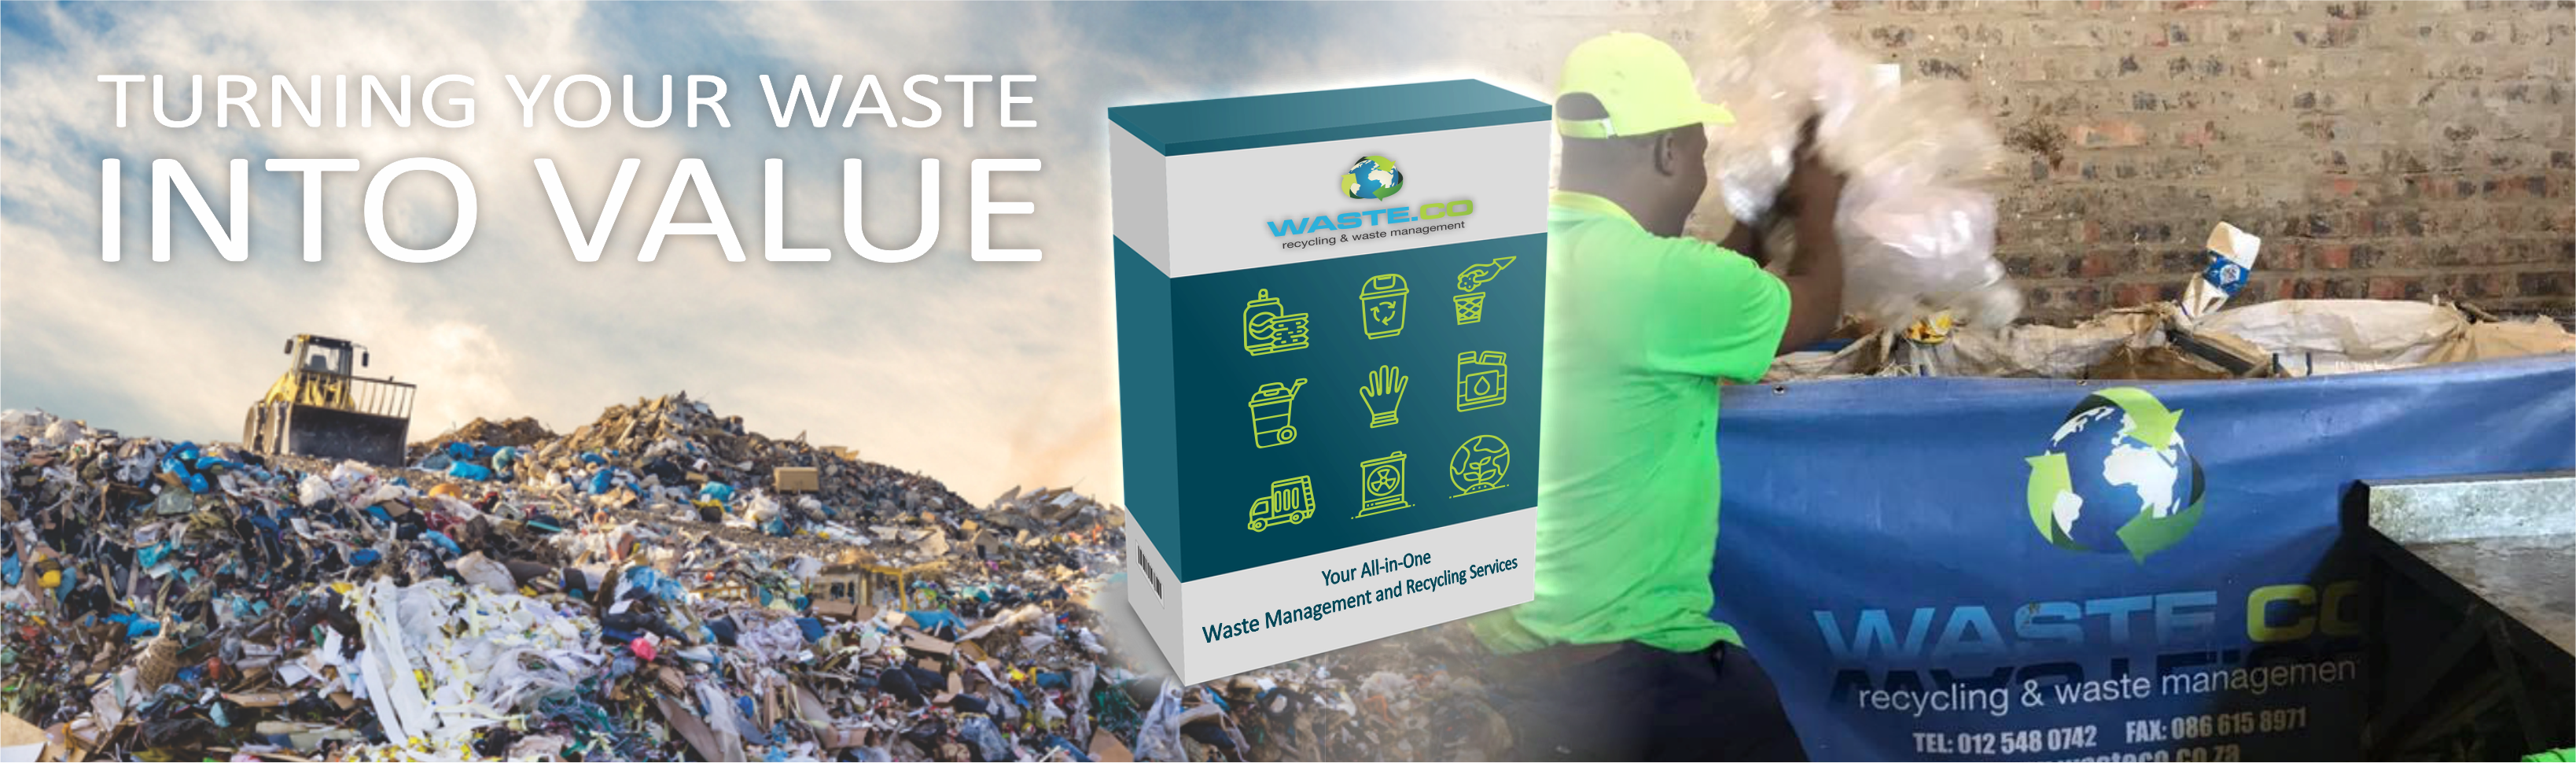 Waste.cO WEBSITE BANNER